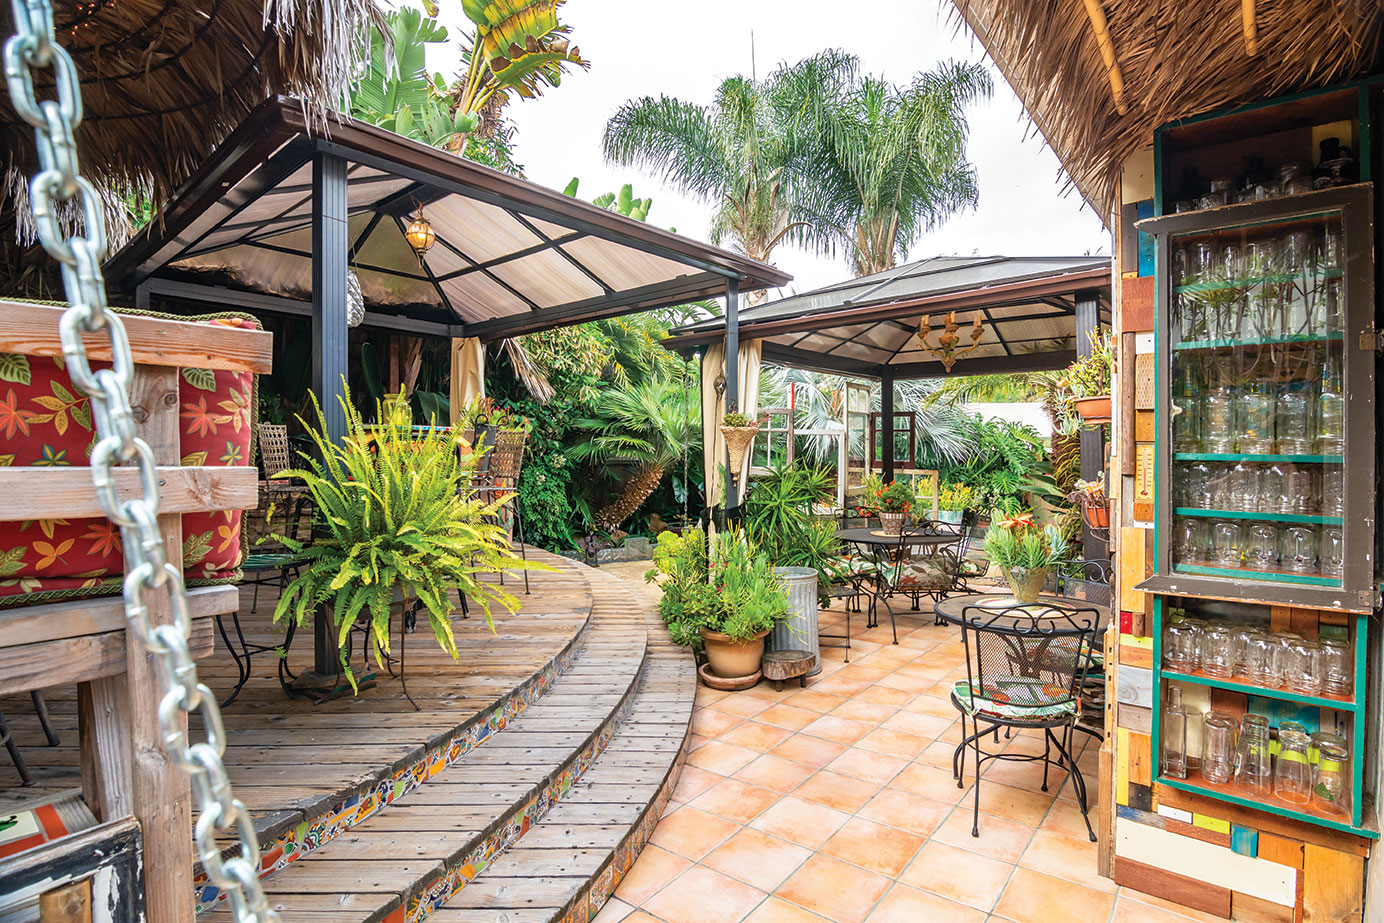 DIY gazebo kits and recycled upcycled bookcase with glasses in a changeable artistic garden in san diego